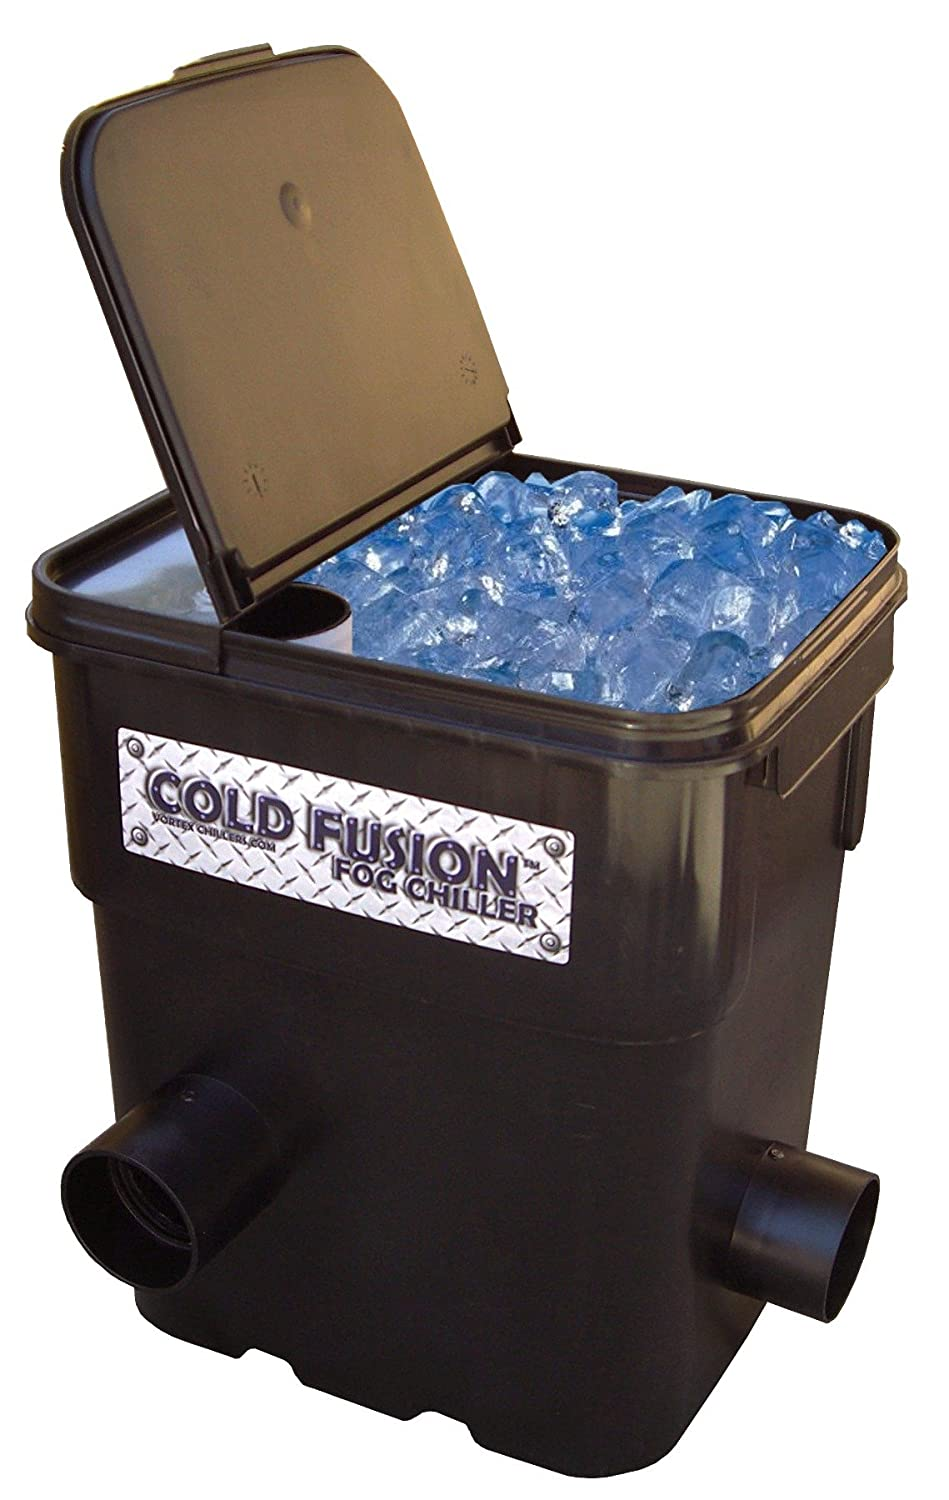 Vortex Chillers Home Series Cold Fusion -Black Fog Chiller Froggys Fog HB191613